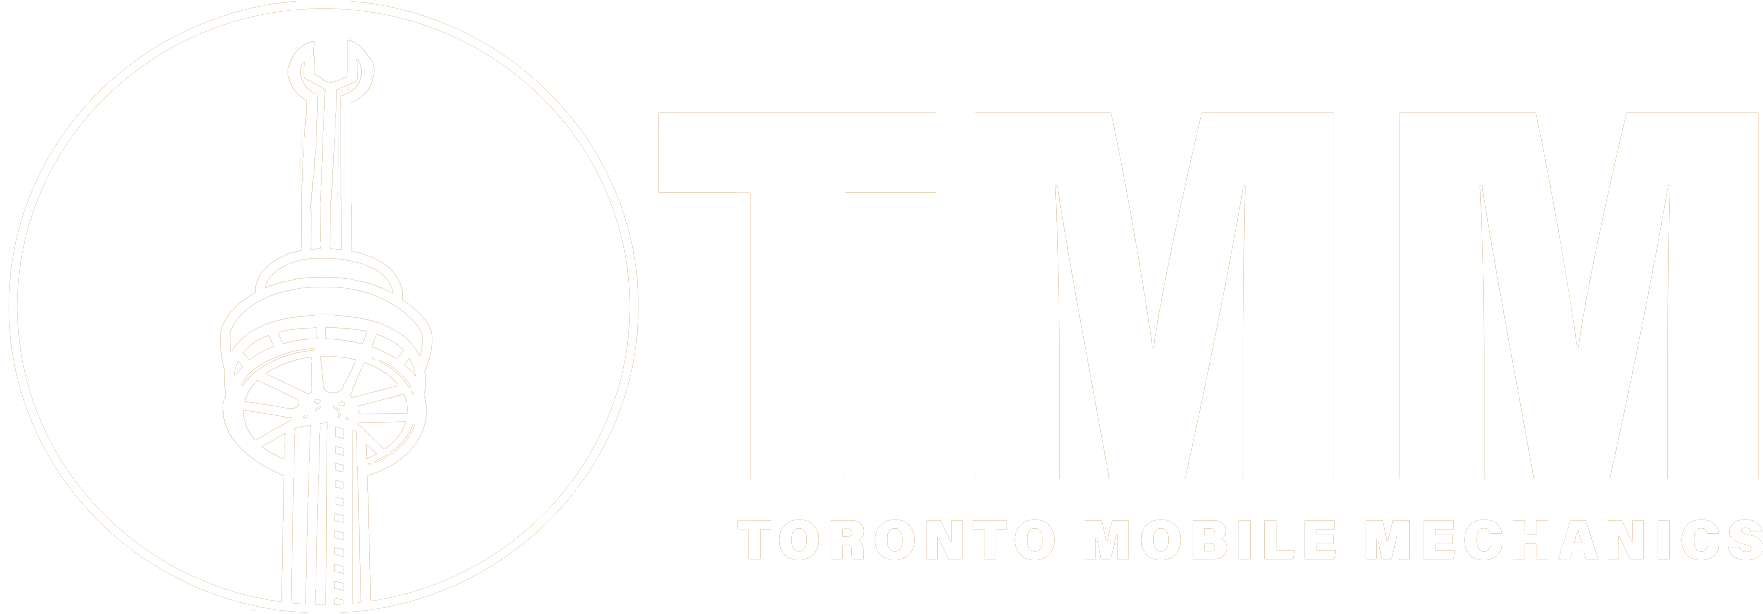 Toronto Mobile Mechanics logo